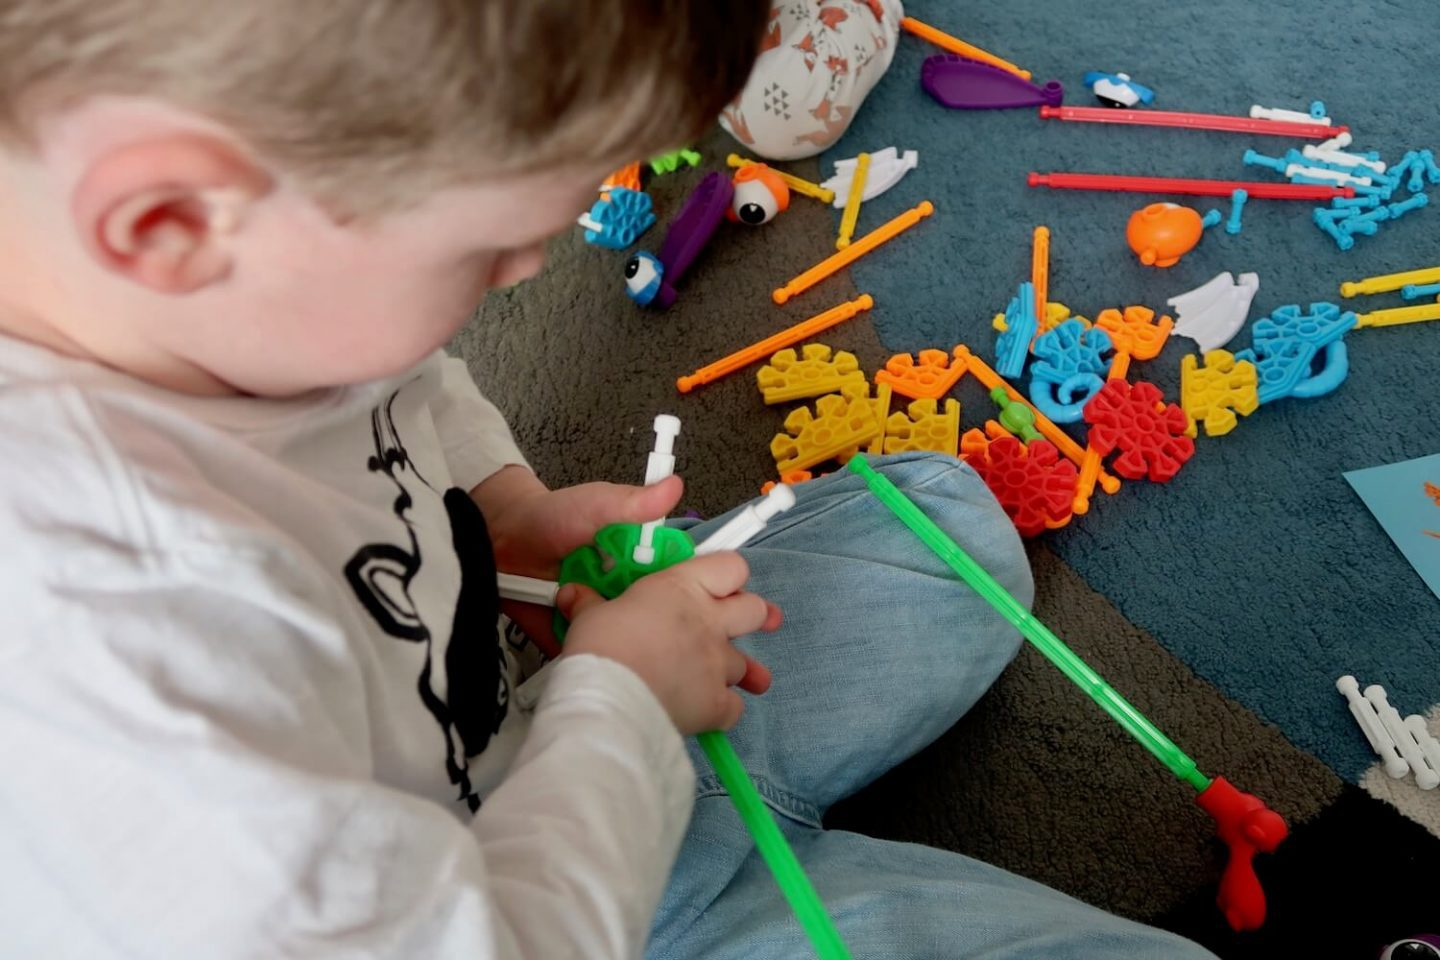 A child building a wand from Kid K'Nex